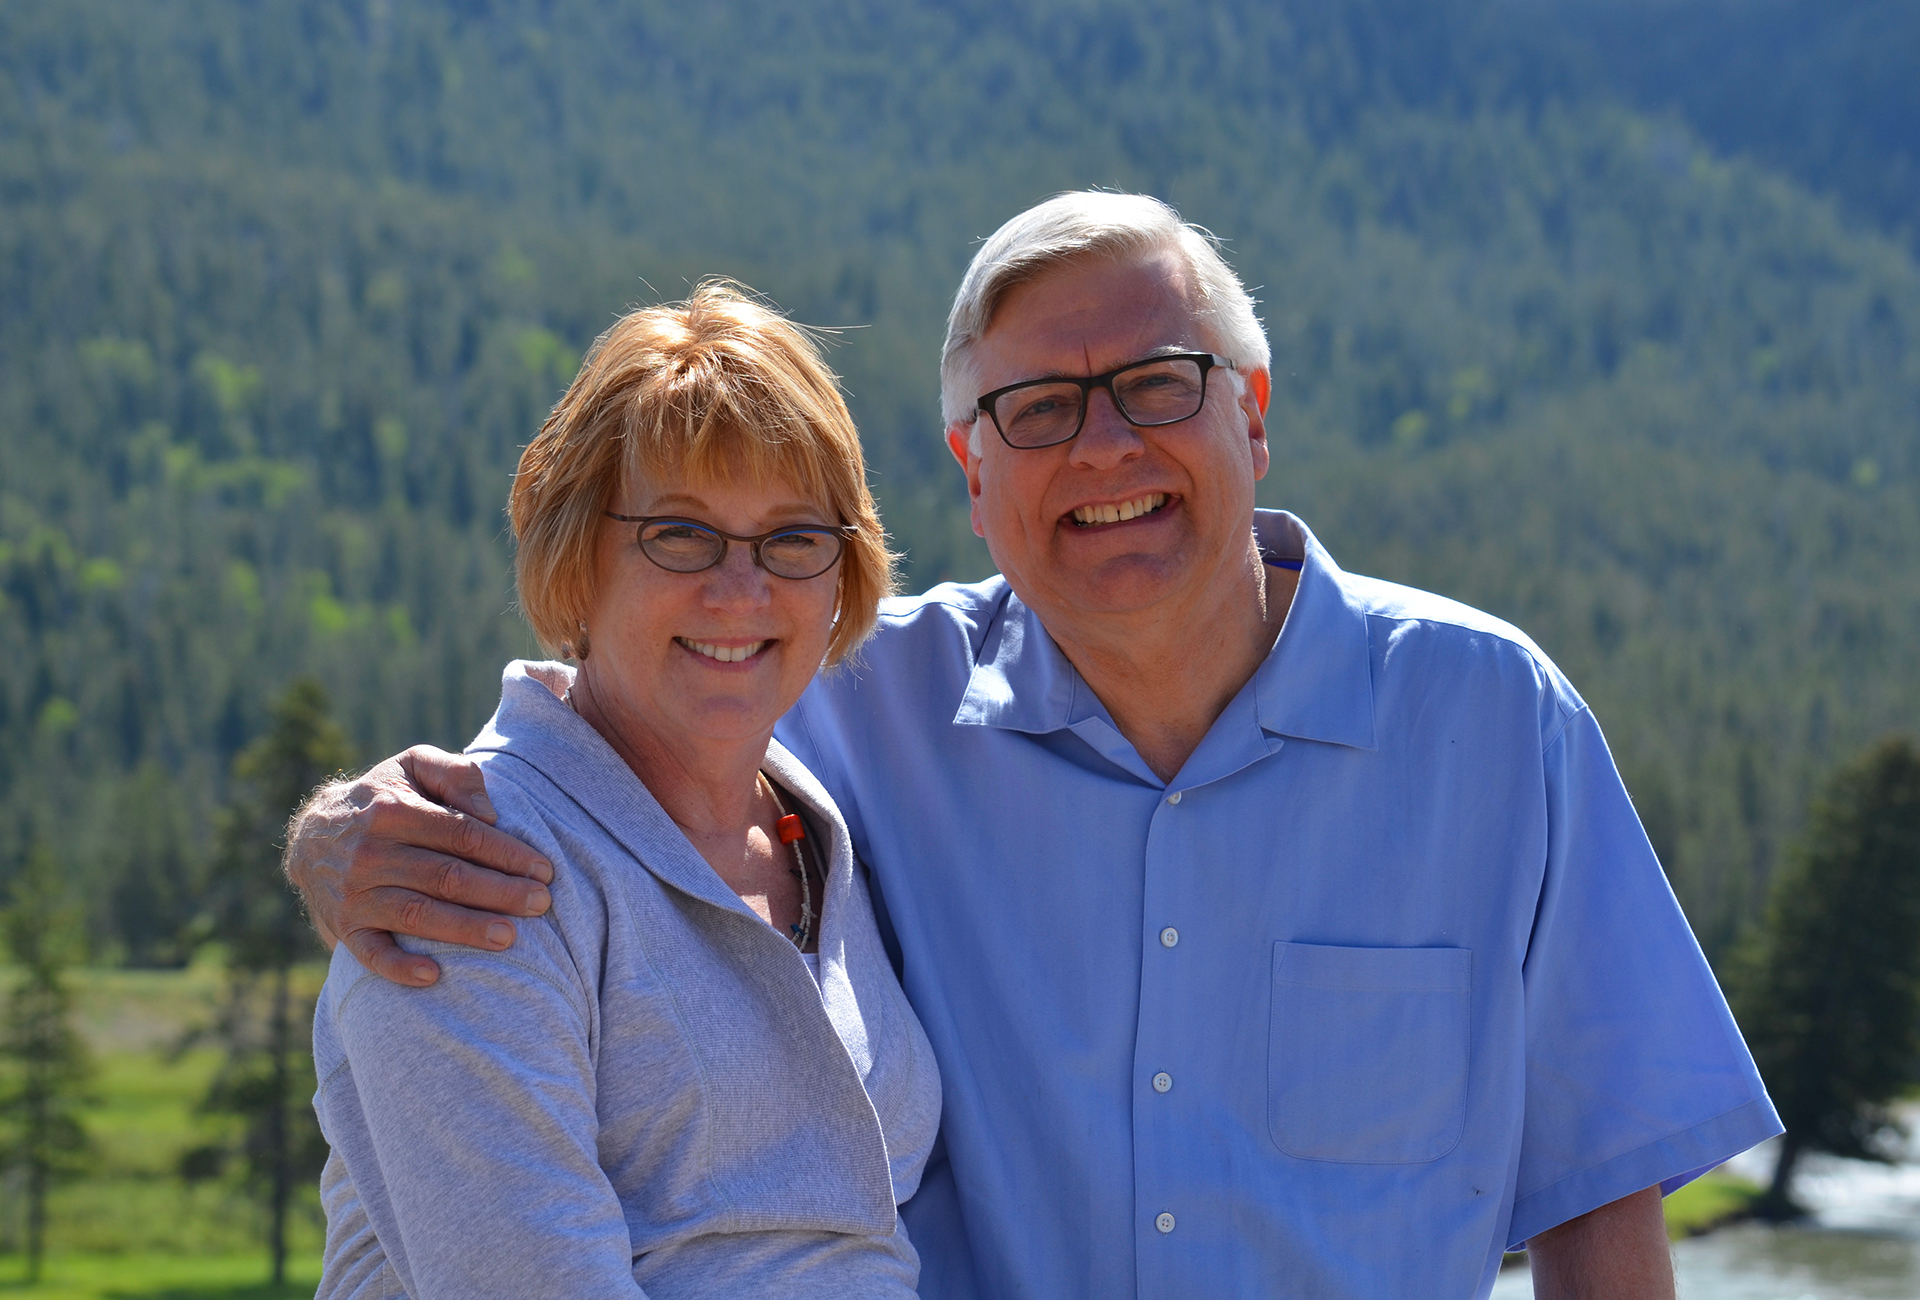 Mary and Randy Diehl with Yellowstone Park in background.